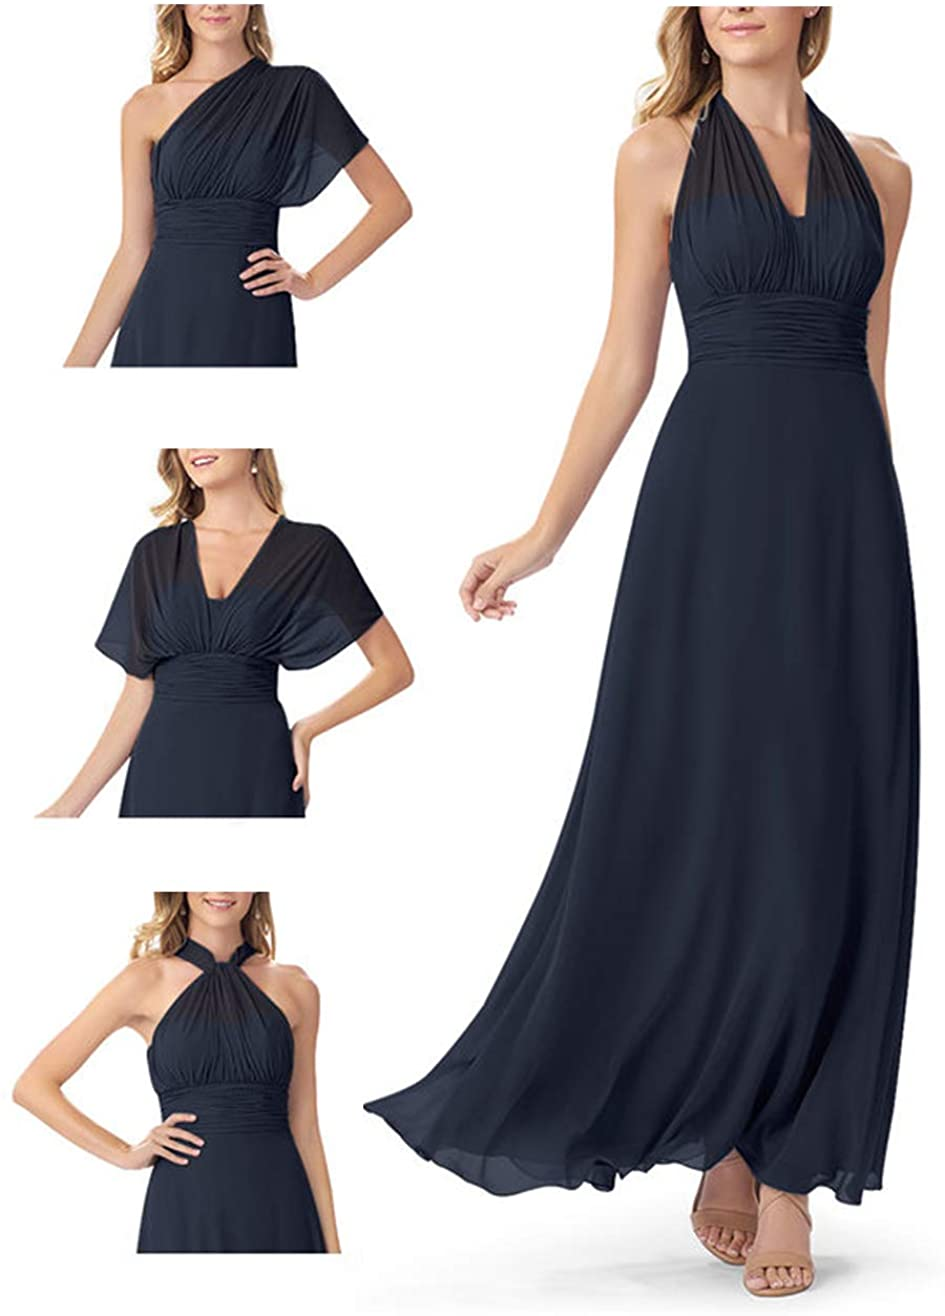 Elleybuy Women's Bridesmaid Dress Long Chiffon Wedding Dress for Bridesmaid Navy Blue